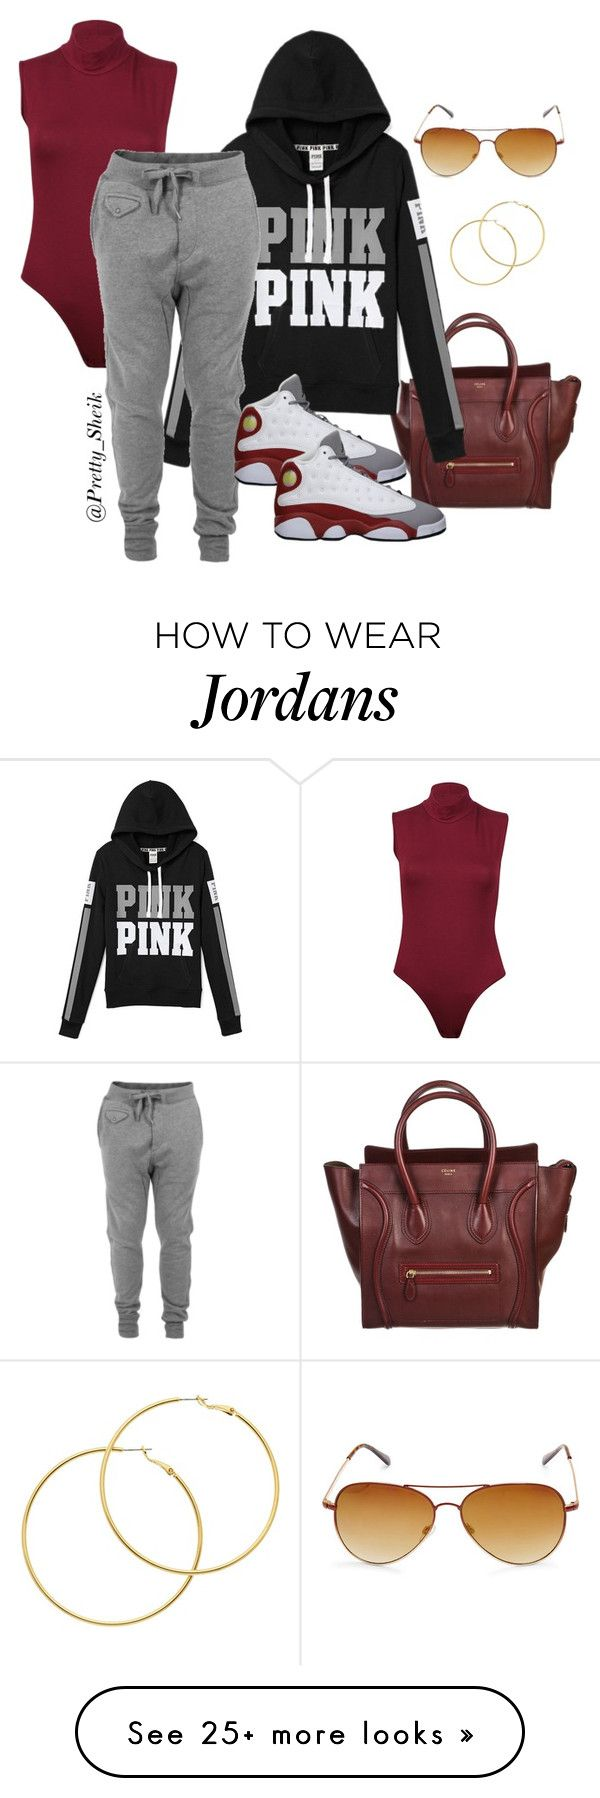 """Airport chic"" by mzchacha on Polyvore featuring CÉLINE, Diesel, Melissa Odabash, Retrò and Steve Madden"